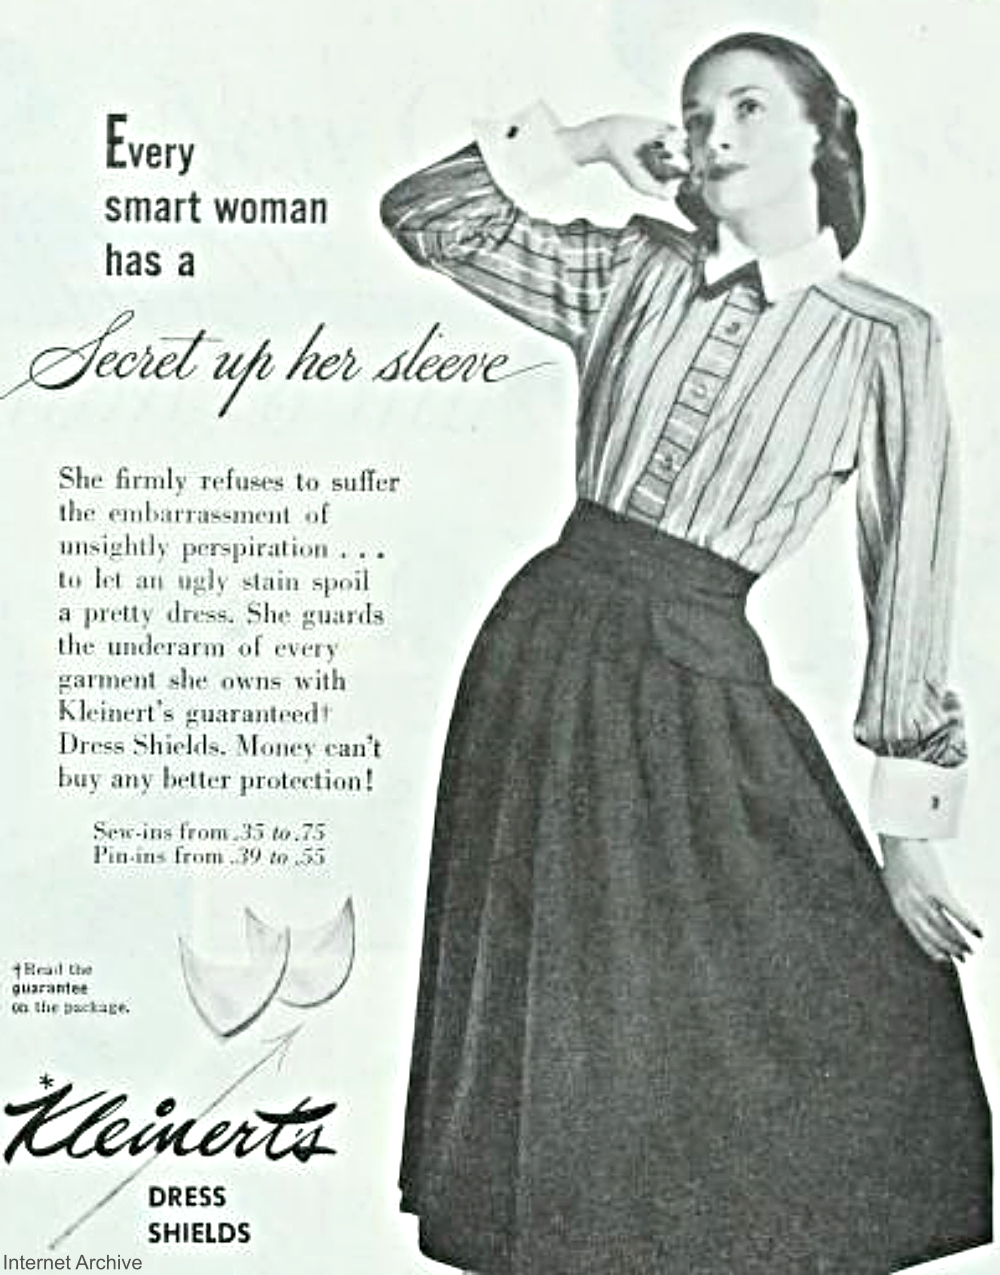 Kleinert's Dress Shields Vintage Advertisement